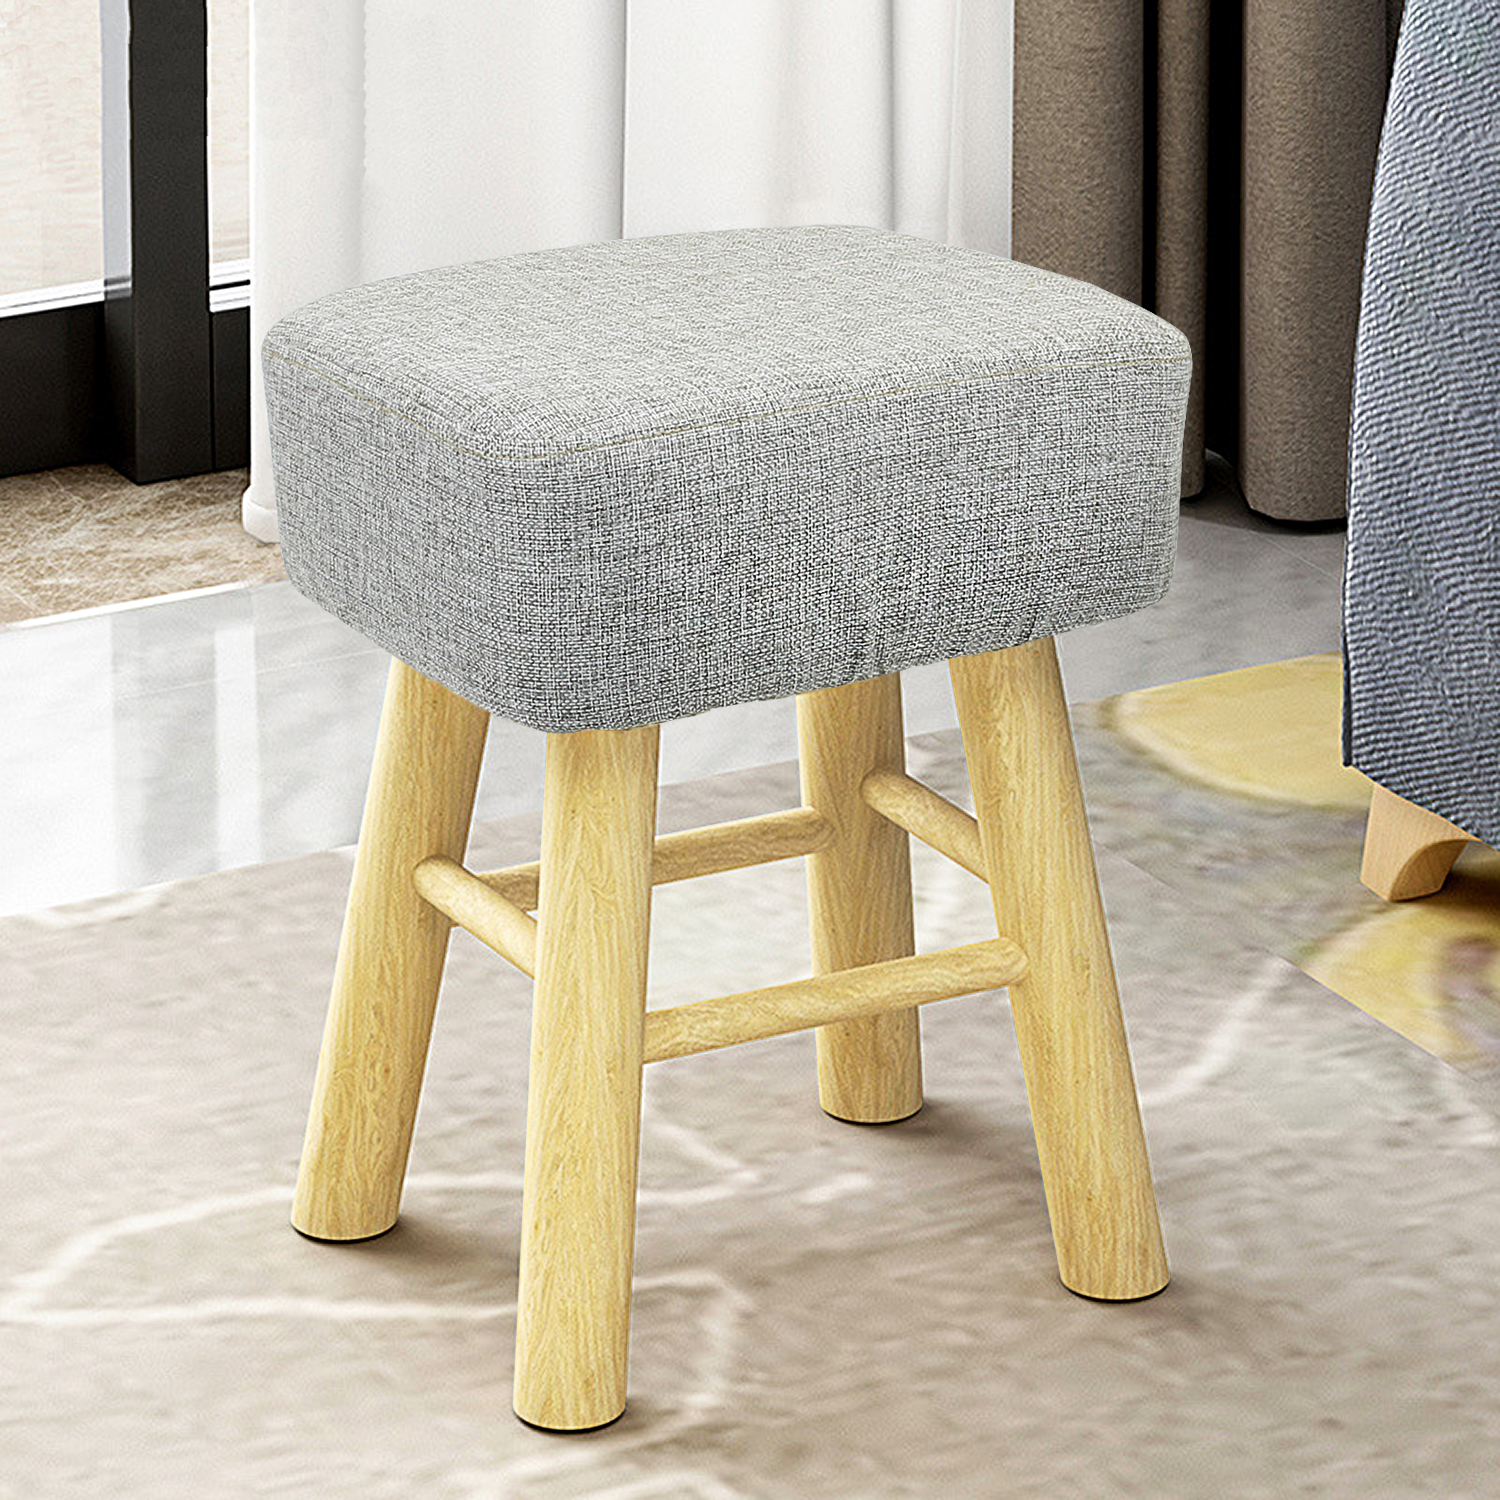 Square Ottoman Footstool Fabric Ottomans Bench Seat Foot Rest Step